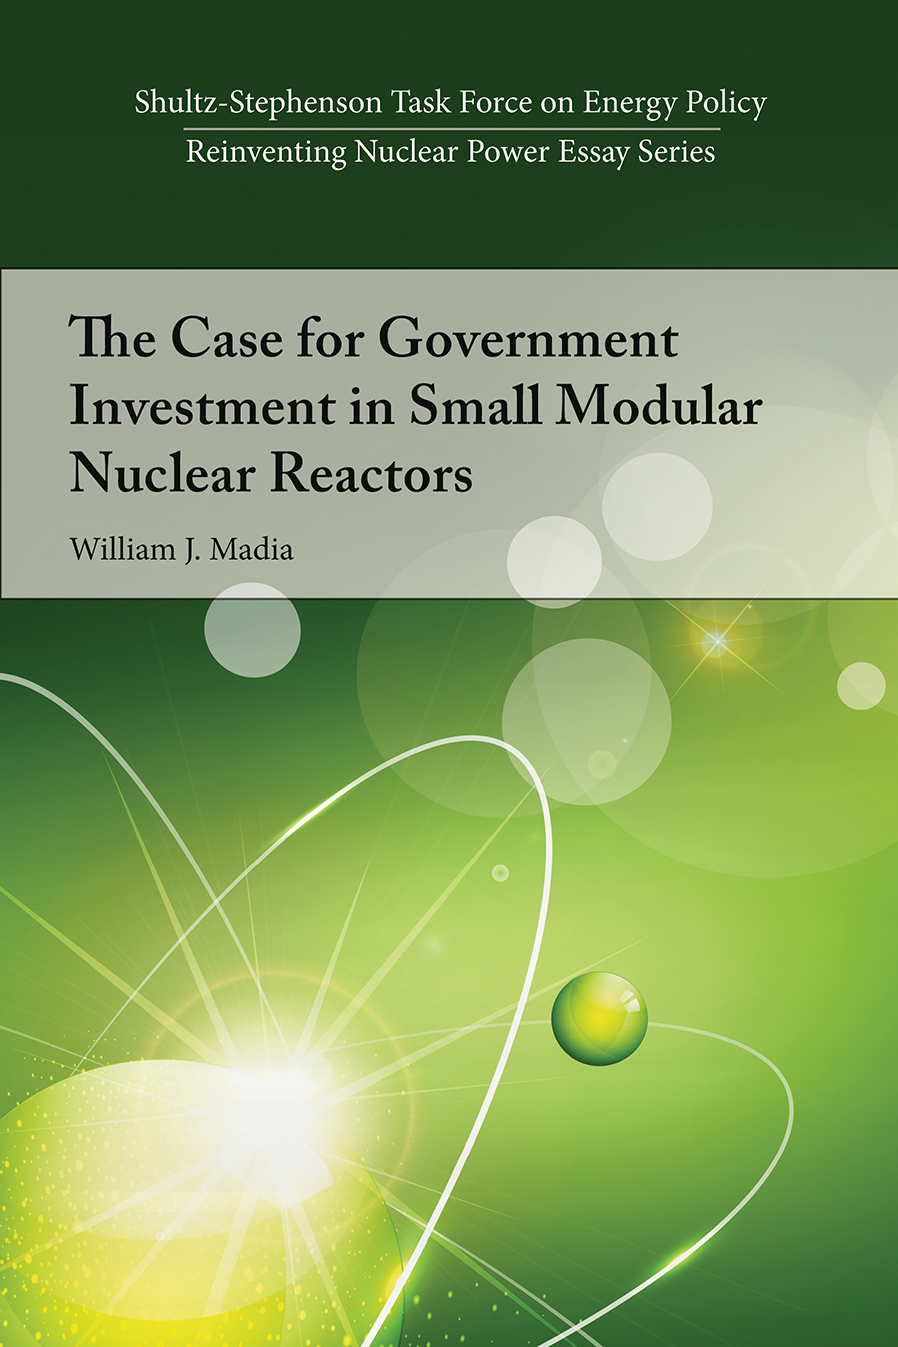 essay on nuclear energy on effect Below you will find a nuclear energy pros and cons list, which covers the most important aspects of typical nuclear power plants there are 104 commercial nuclear power plants in the united states producing a whopping 8062 twh of electricity, in other words about 20 % of the entire electricity generation (2008.